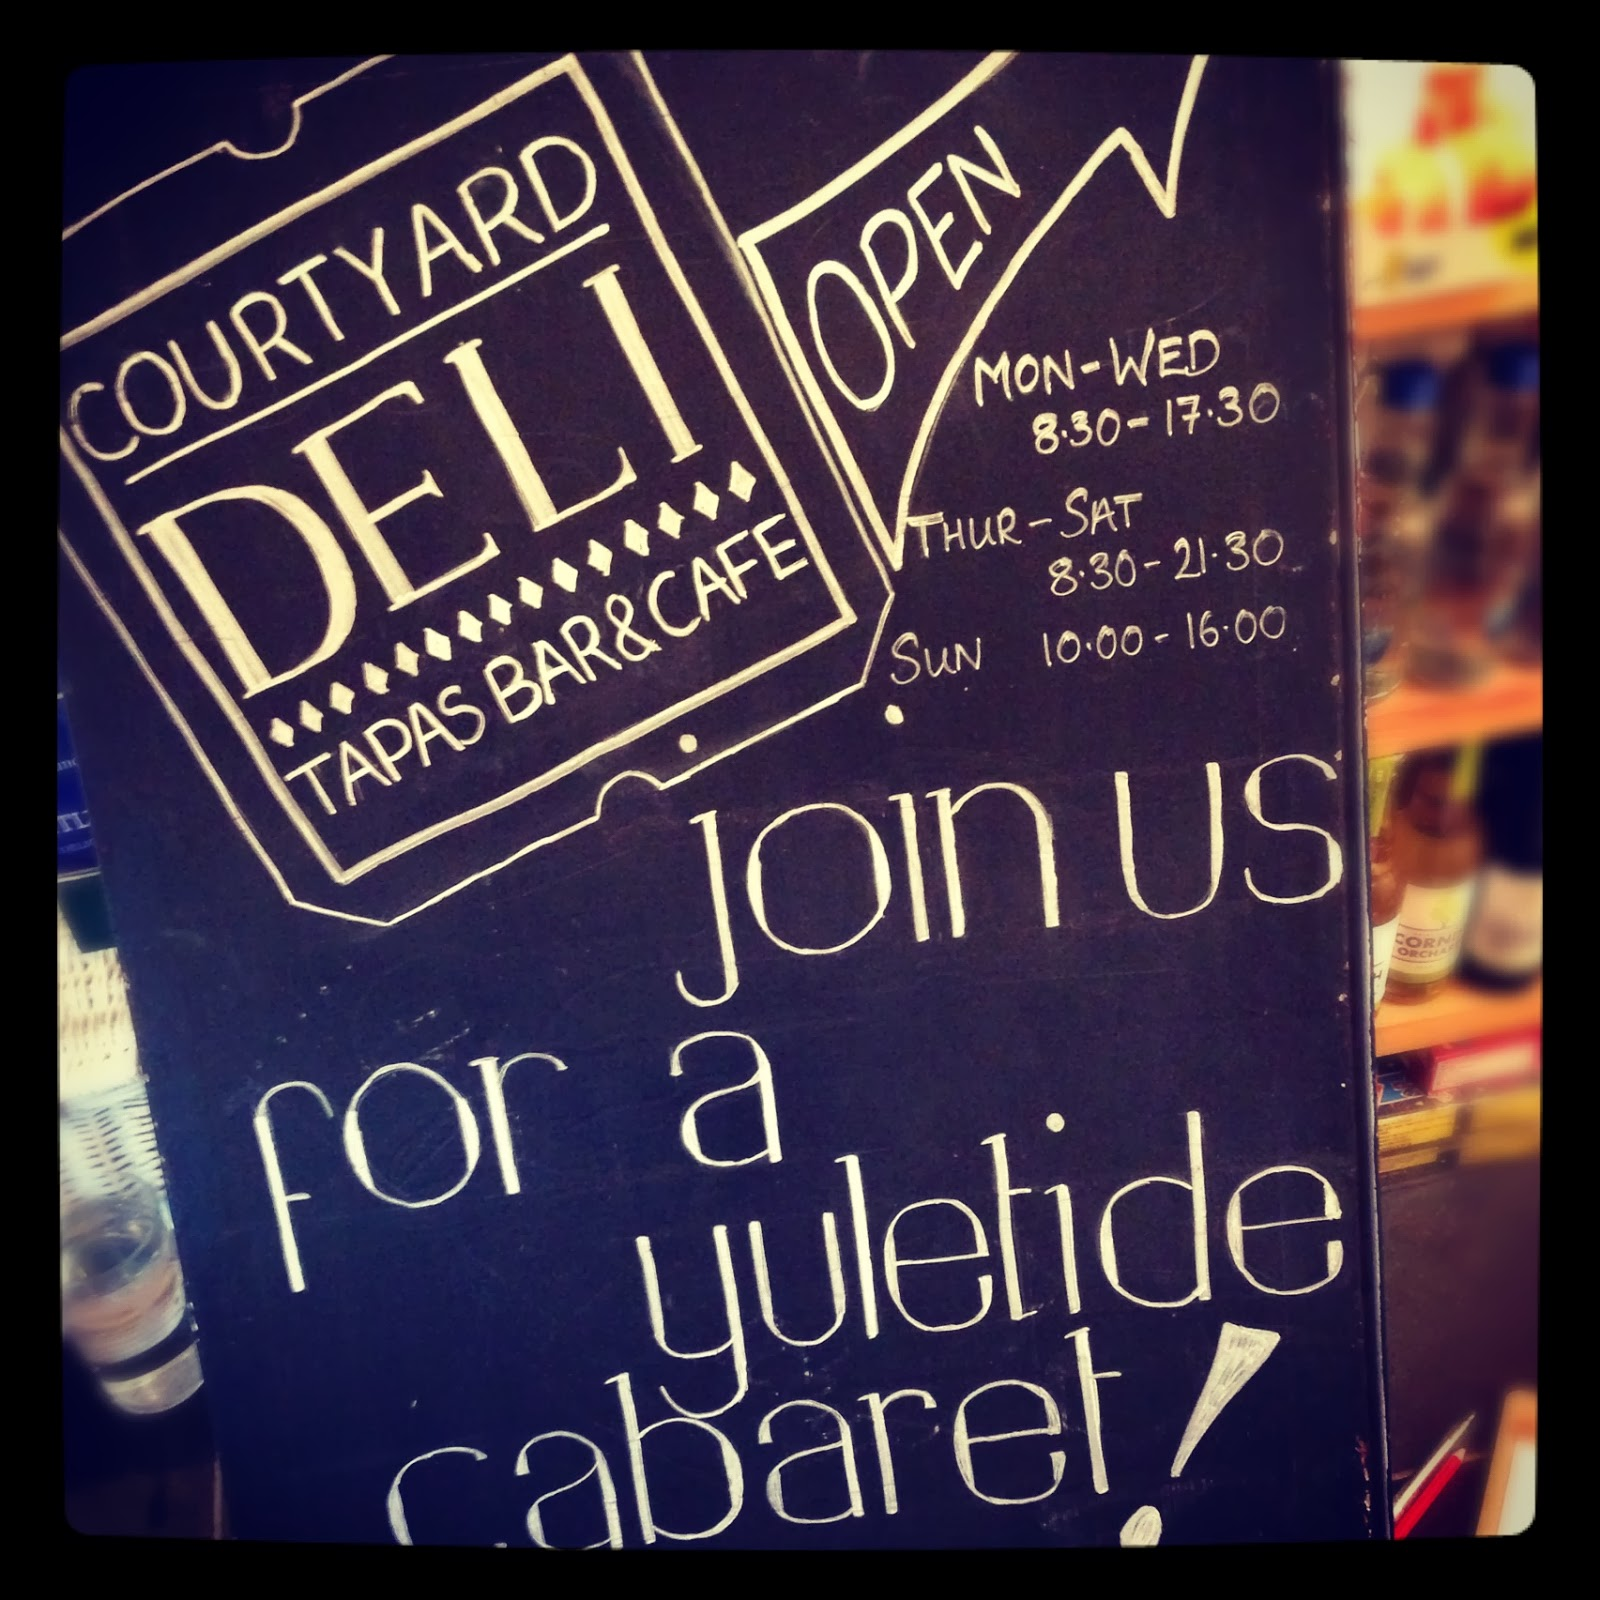 The Courtyard Deli, Falmouth